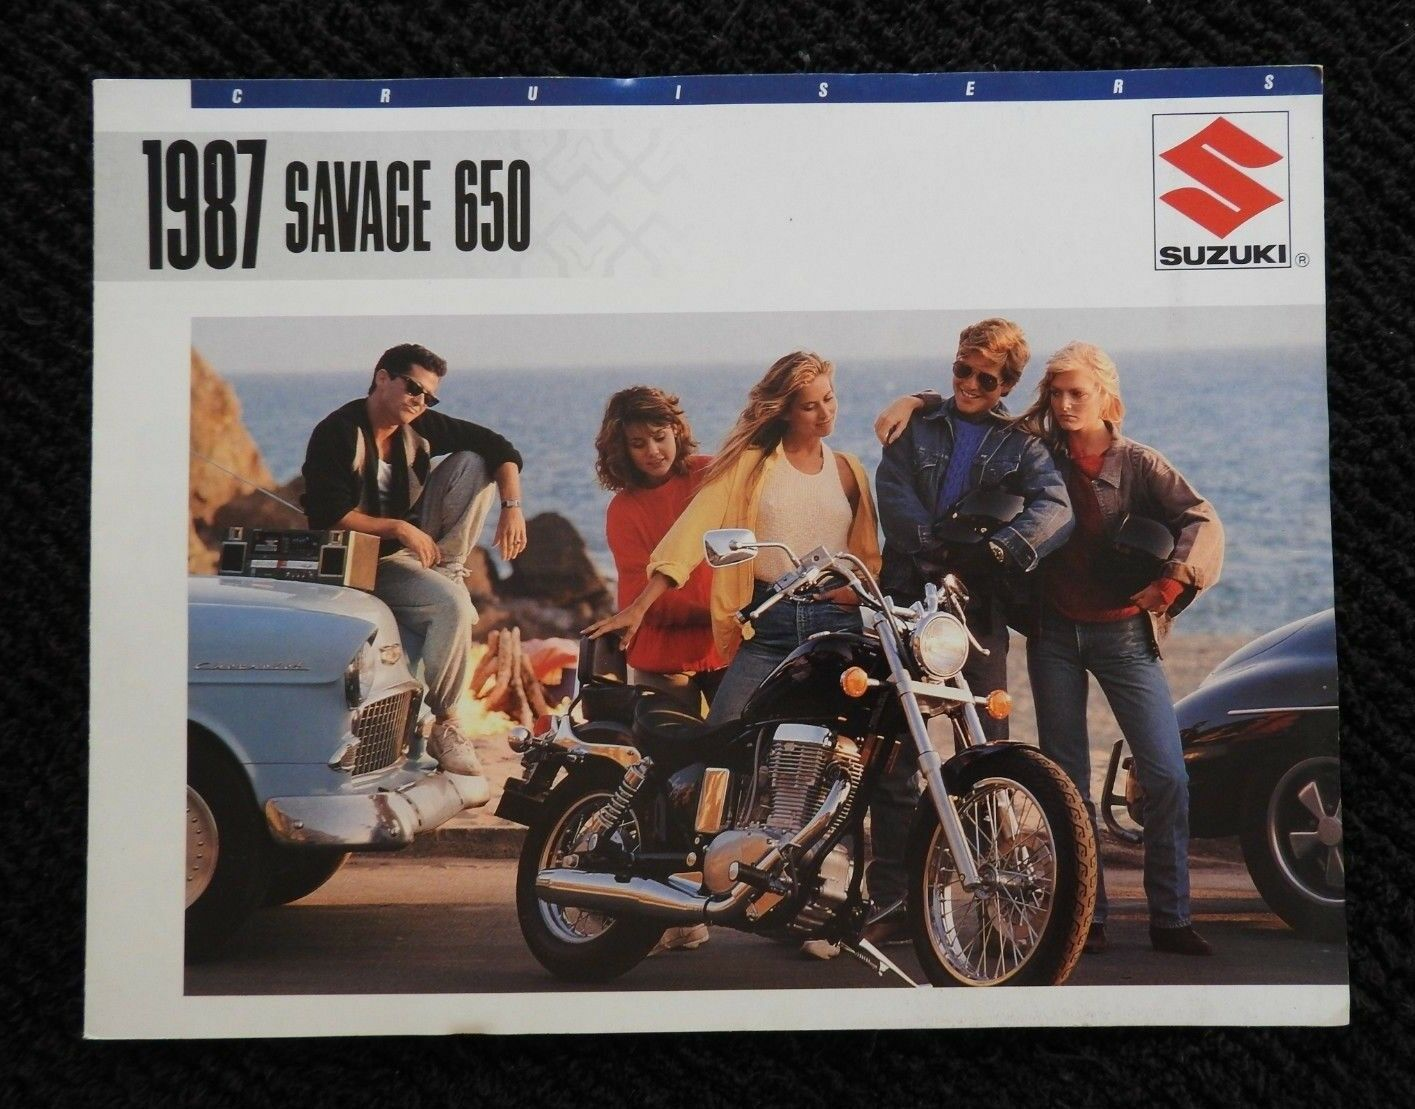 1987 Suzuki Savage 650 Motorcycle Sales Brochure Very Nice Shape Wiring Harness 79 Kawasaki Ke250 1 Of 6only Available